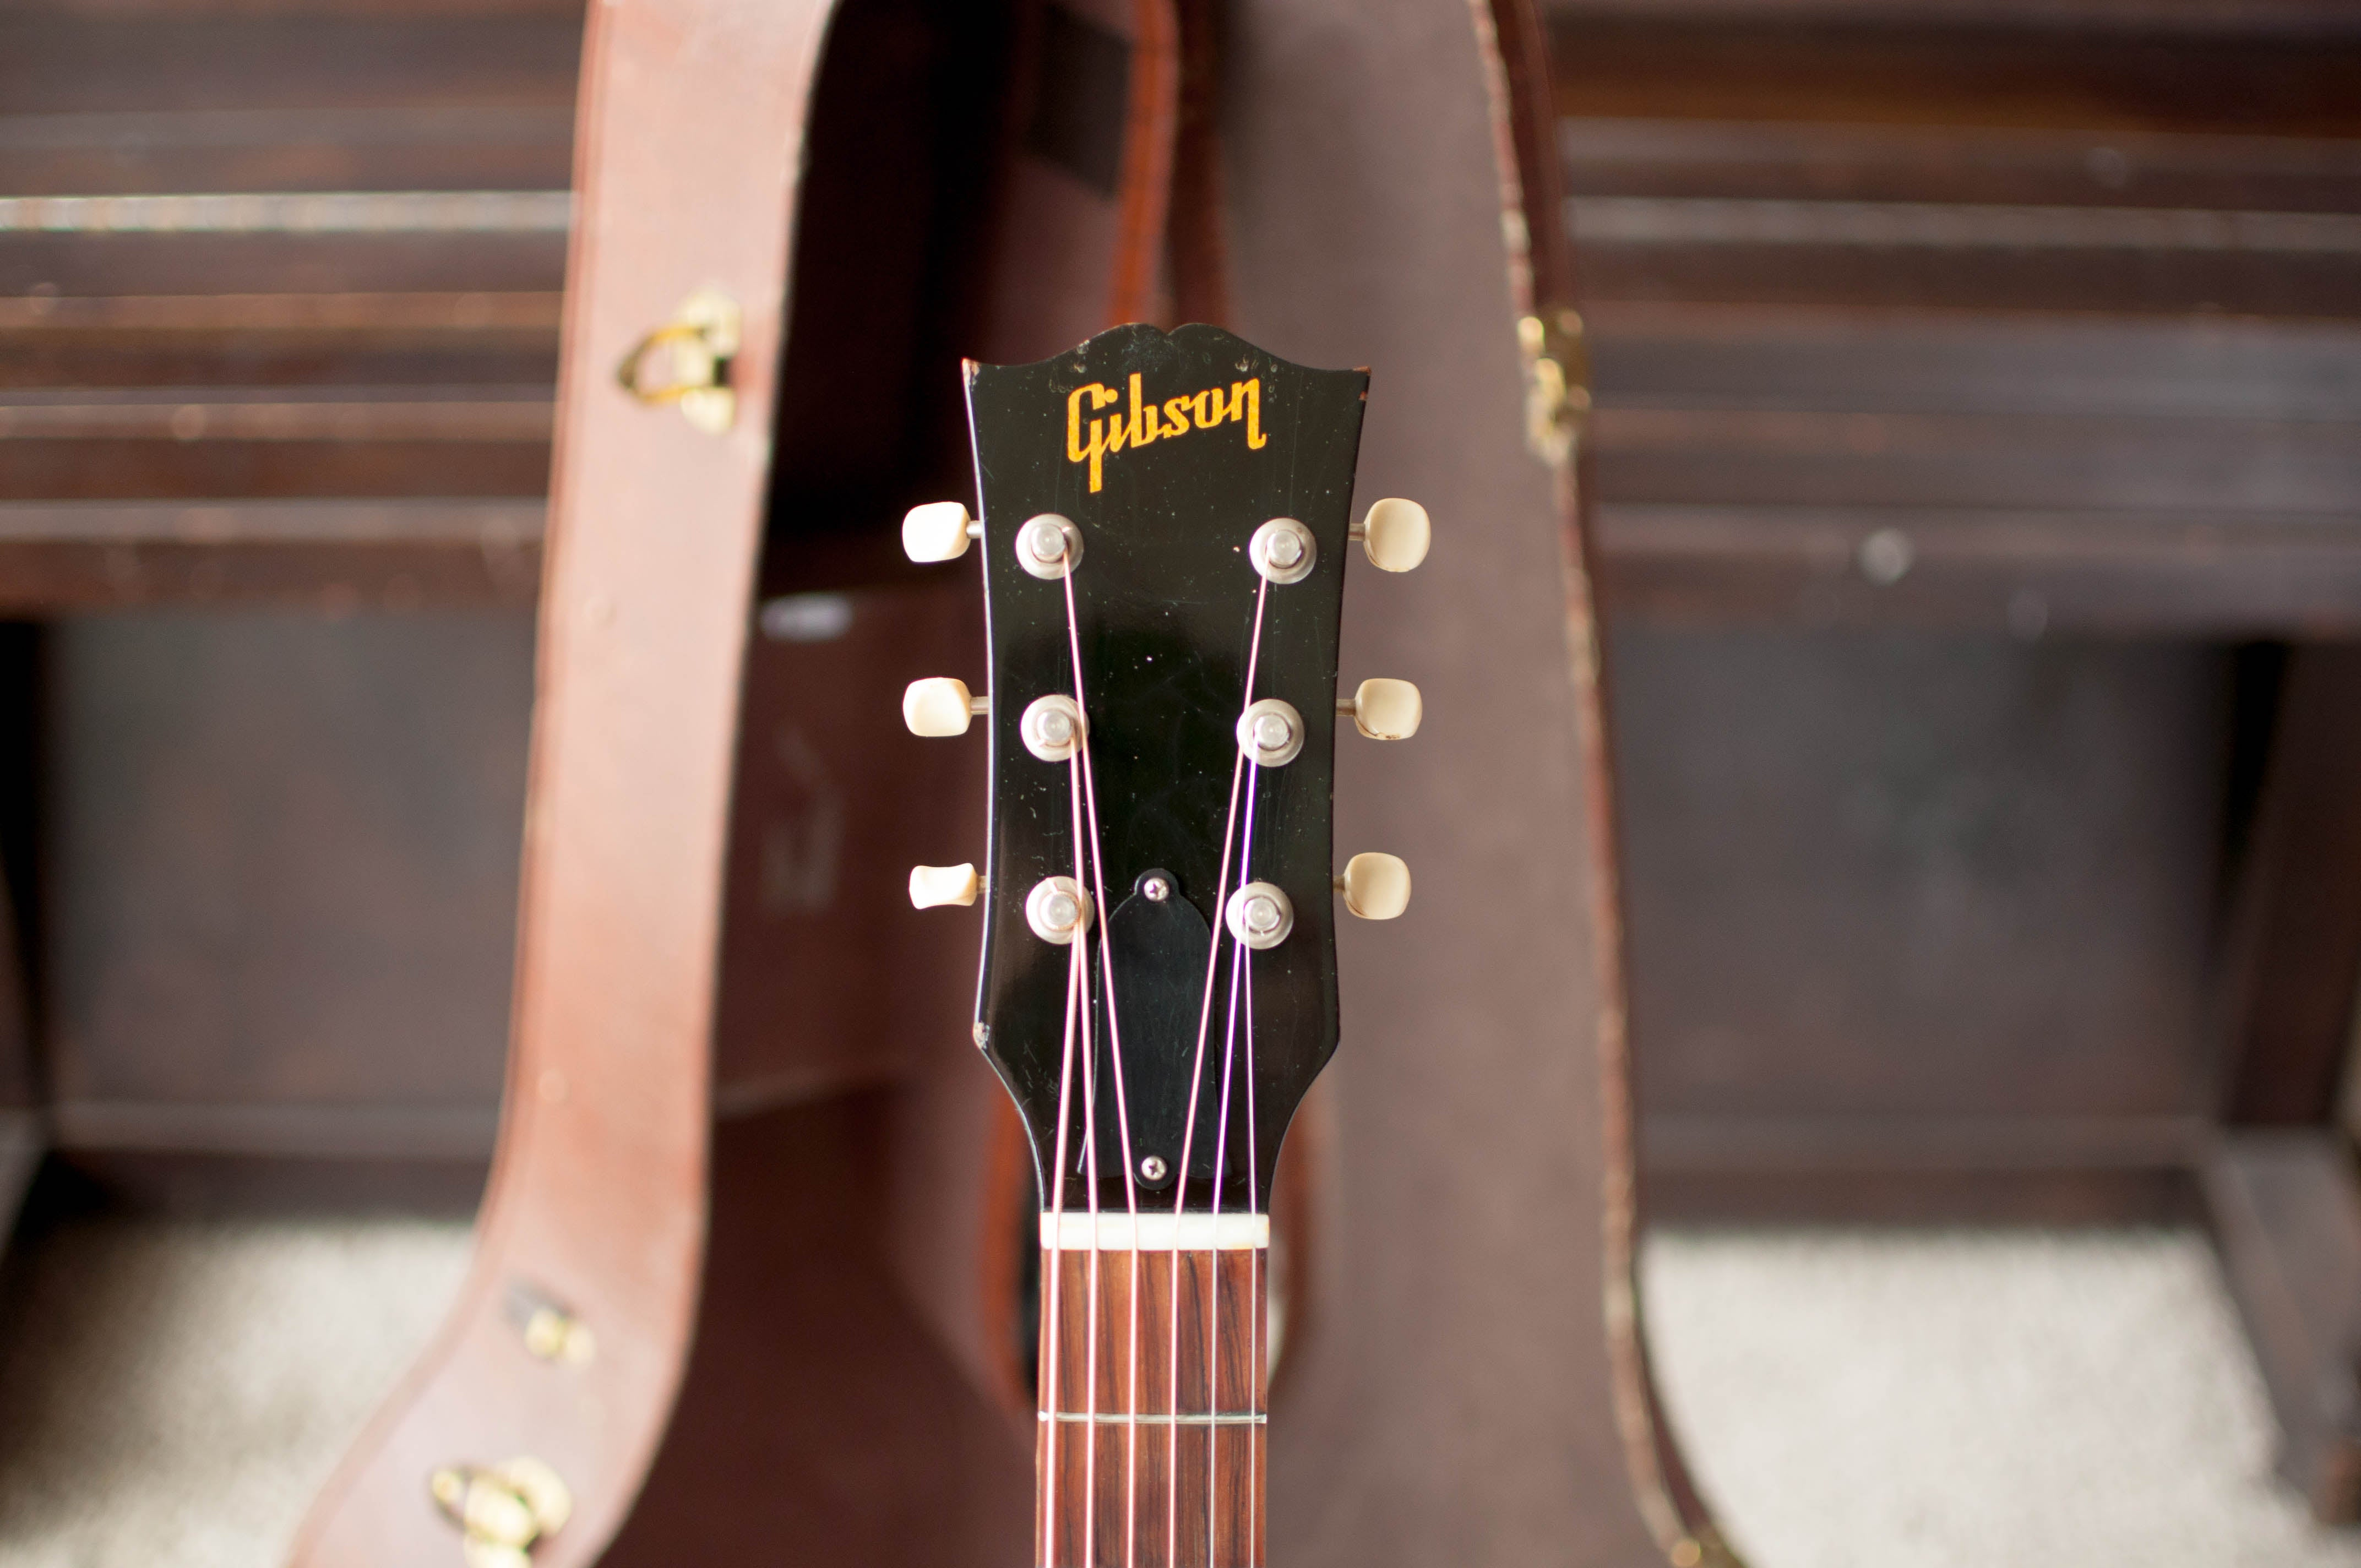 Gibson guitar headstock 1950s